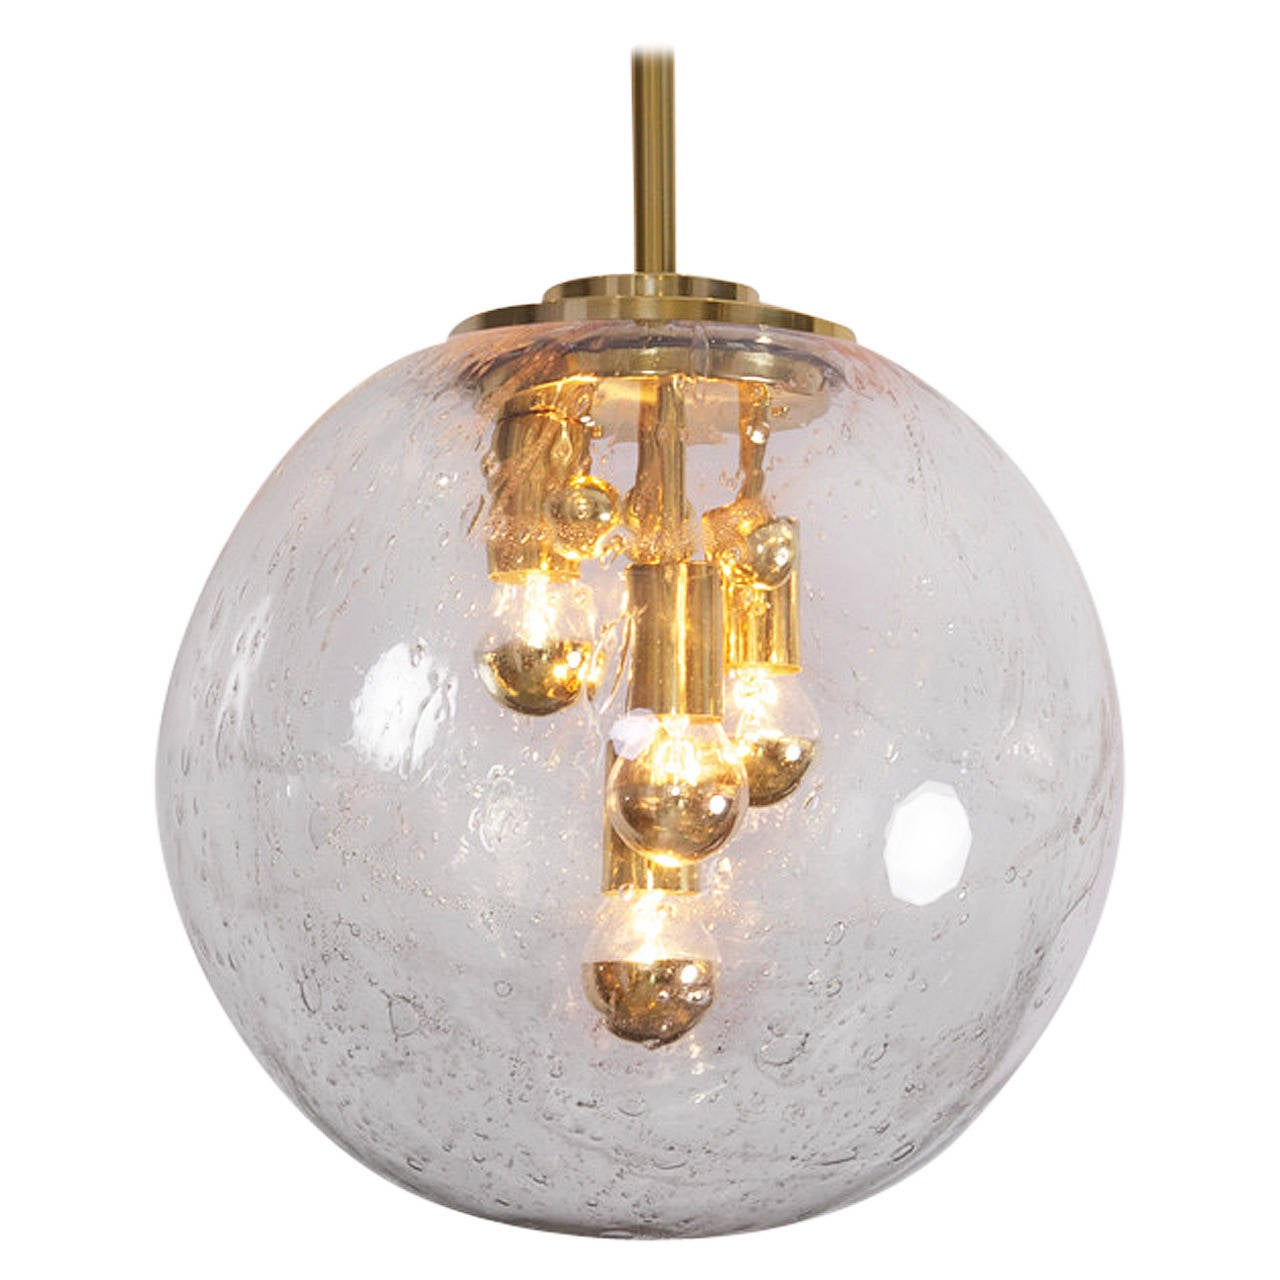 xxl multi light hand blown glass globe sputnik pendant by doria at